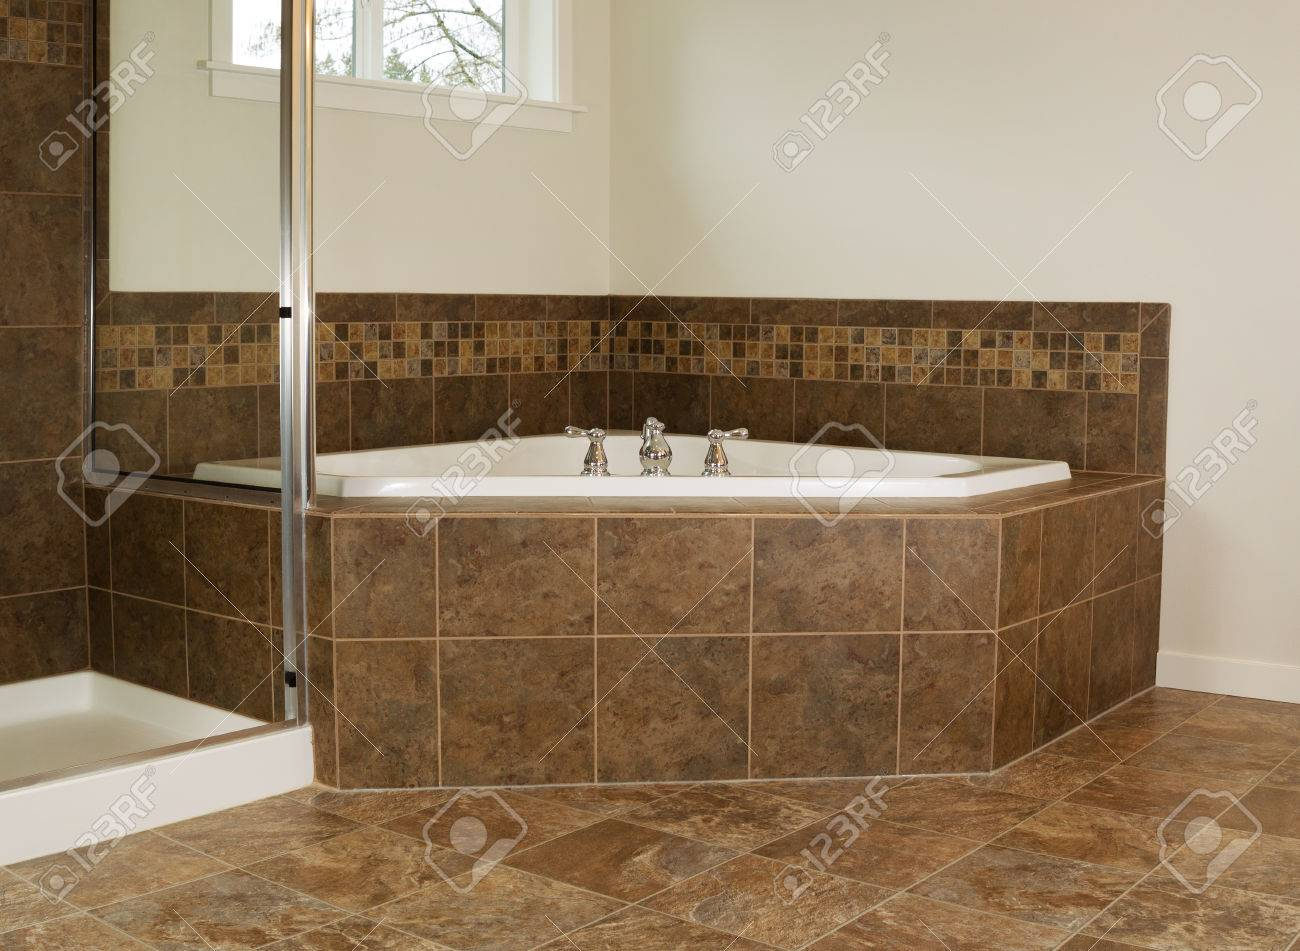 Soak Badkamer Horizontal Photo Of Soaking Tub In Master Bathroom With Partial